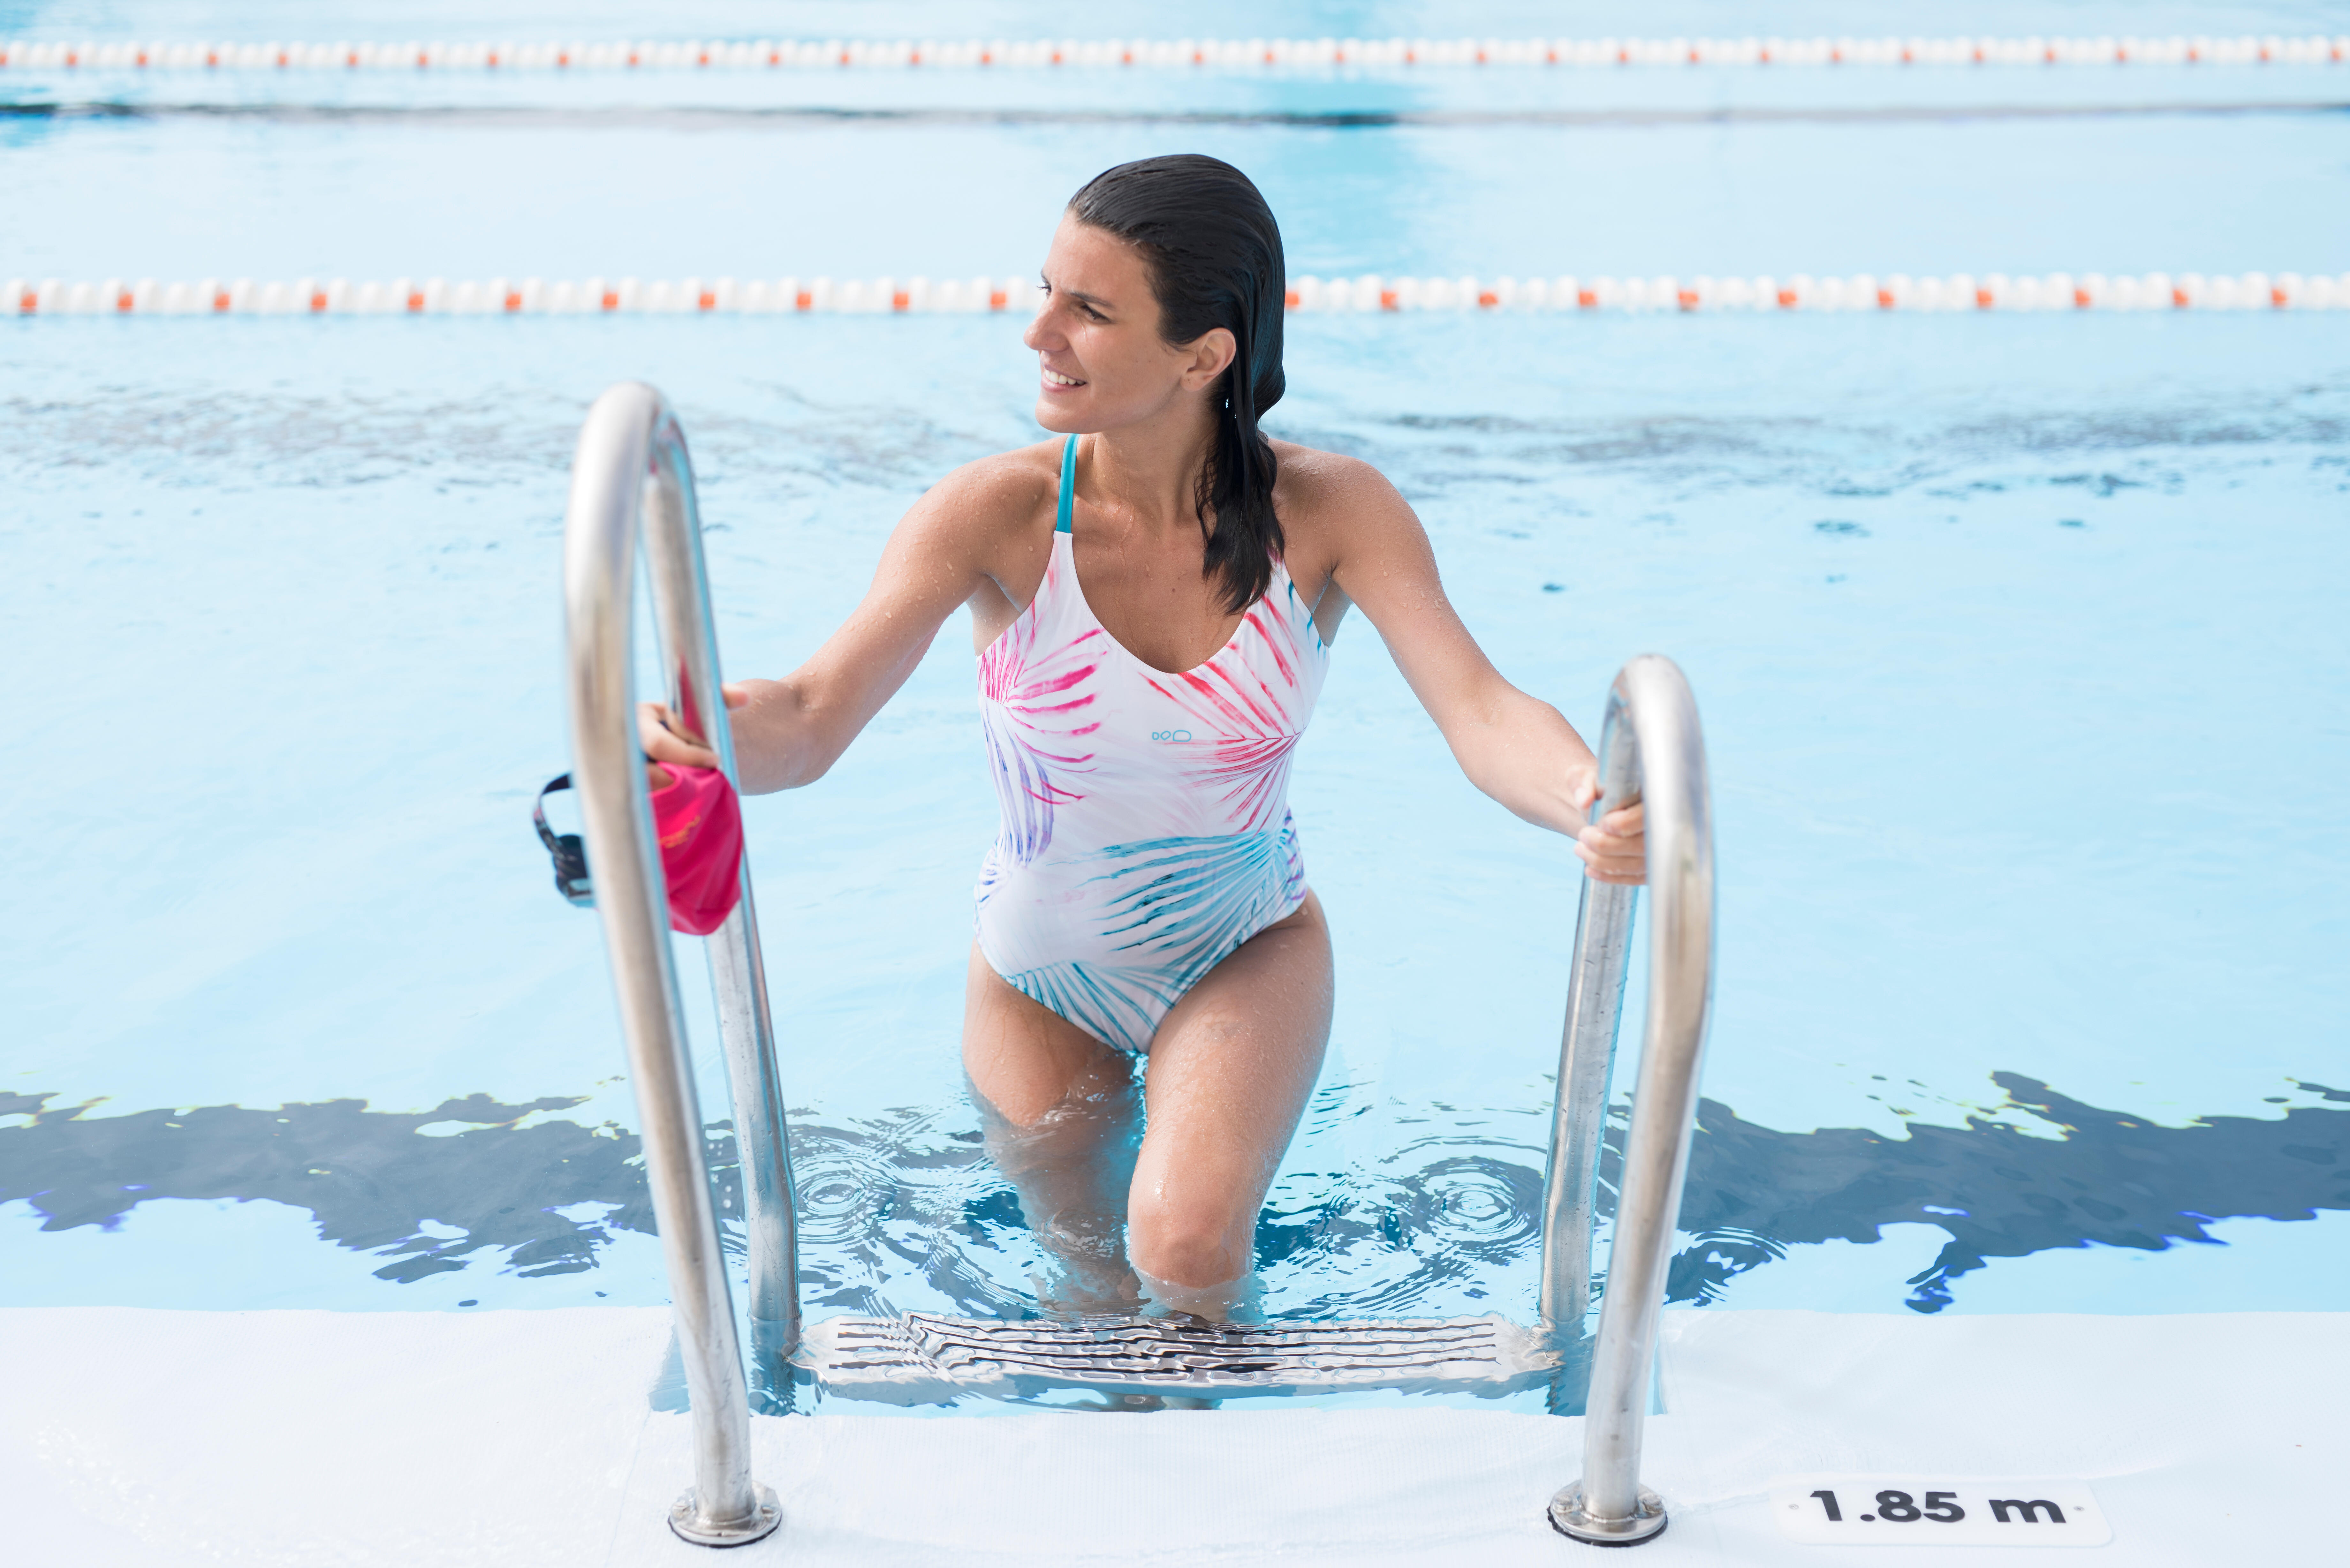 NATATION : COMMENT AFFINER MA SILHOUETTE ?